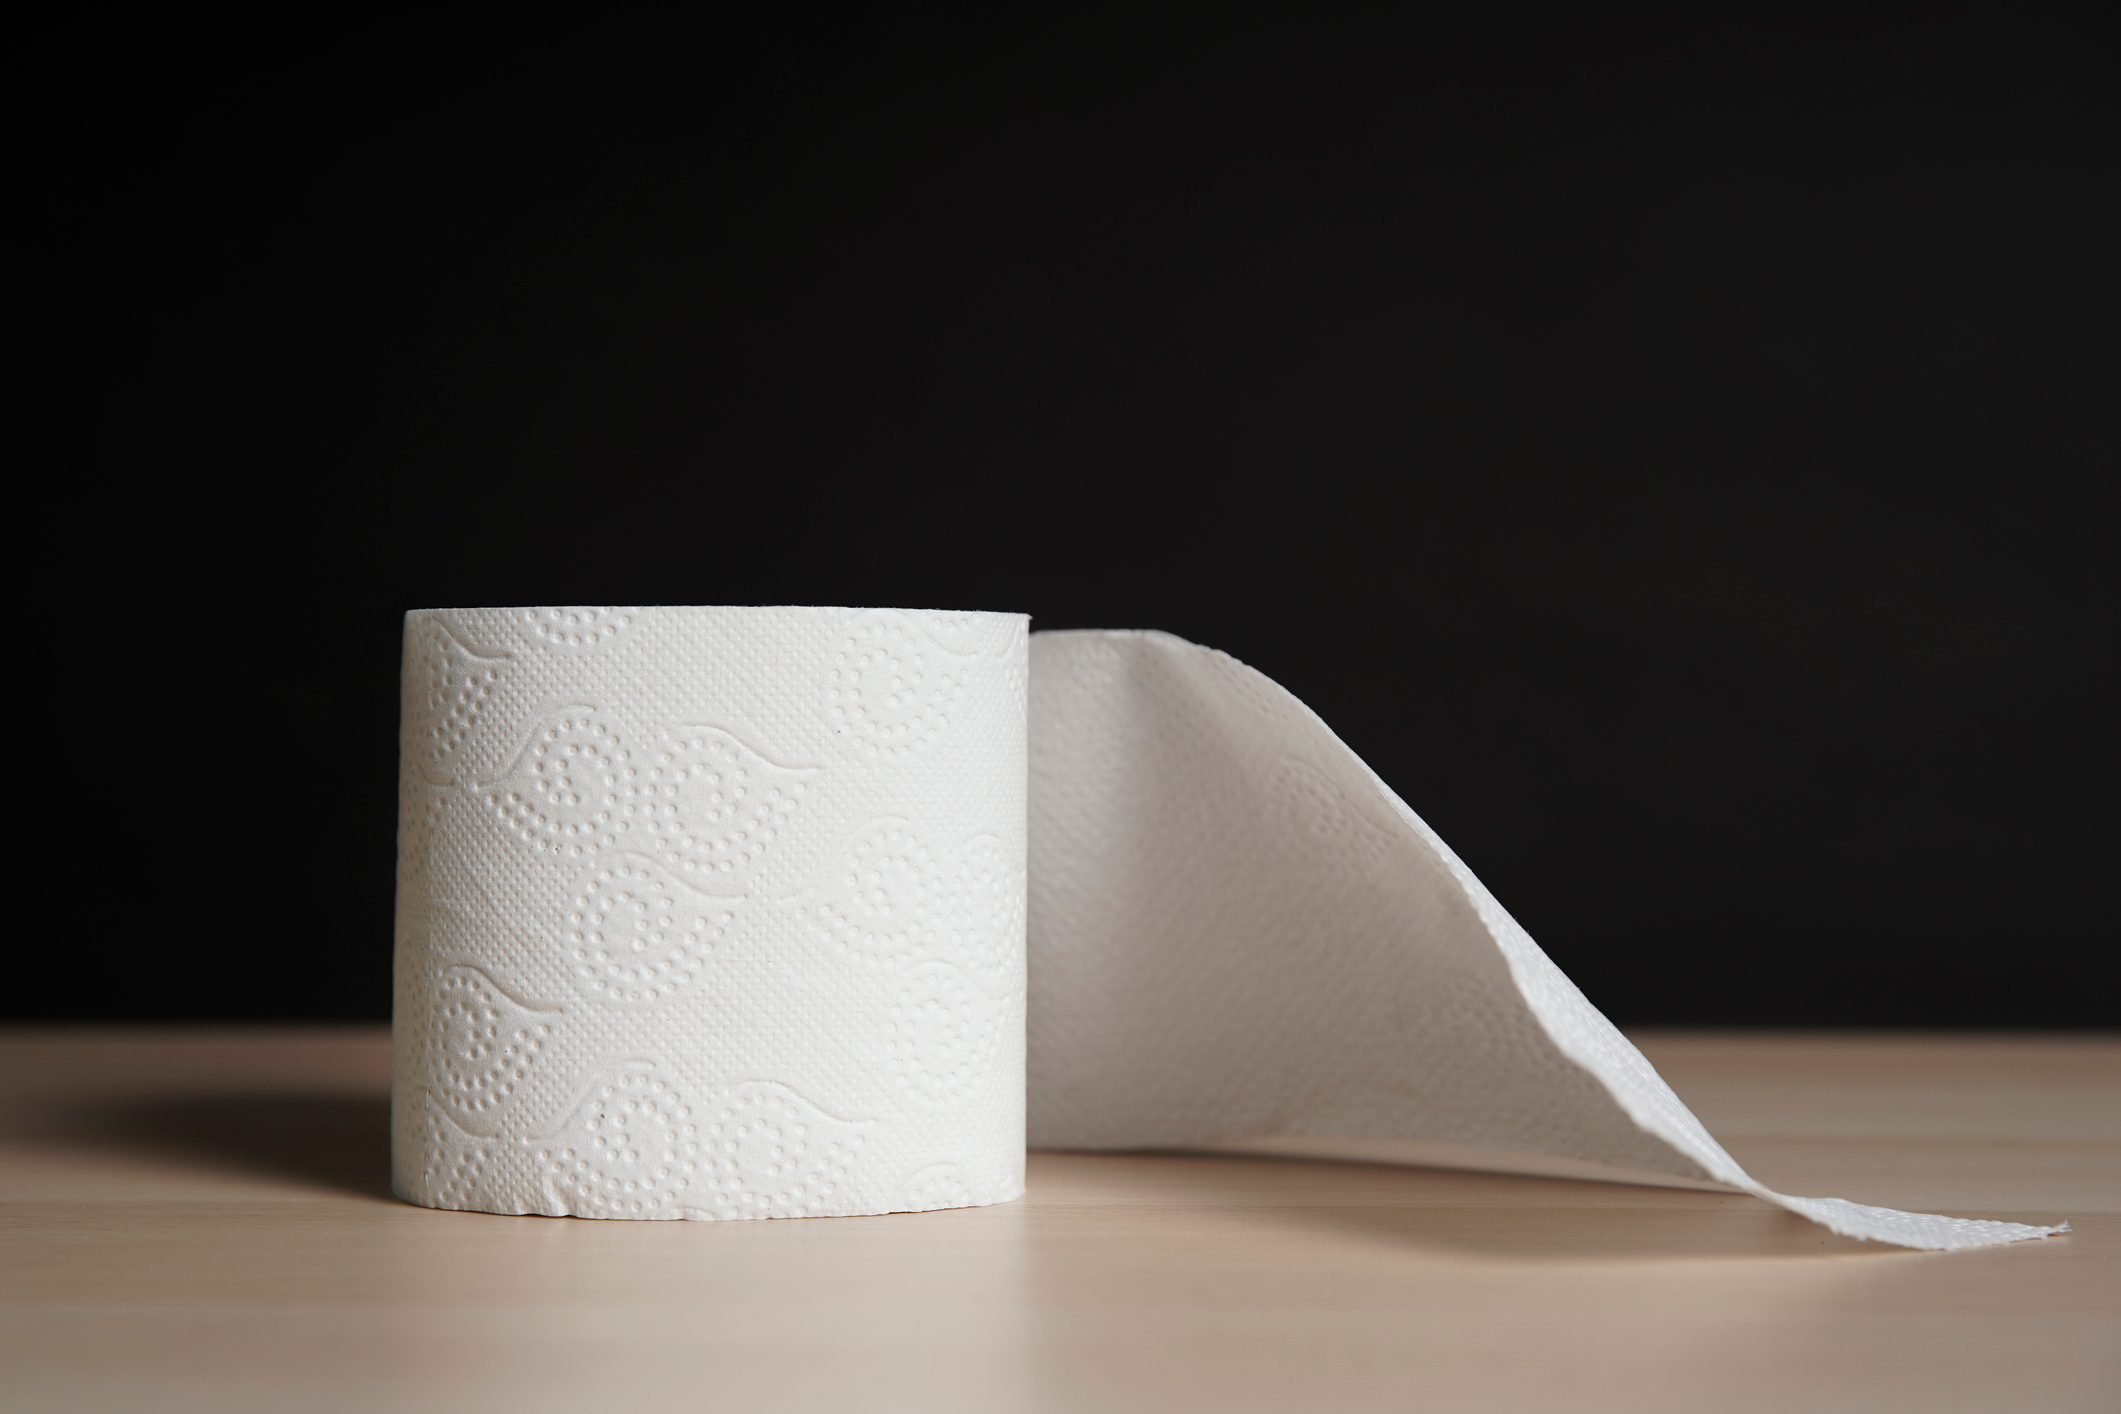 roll of toilet paper on black background